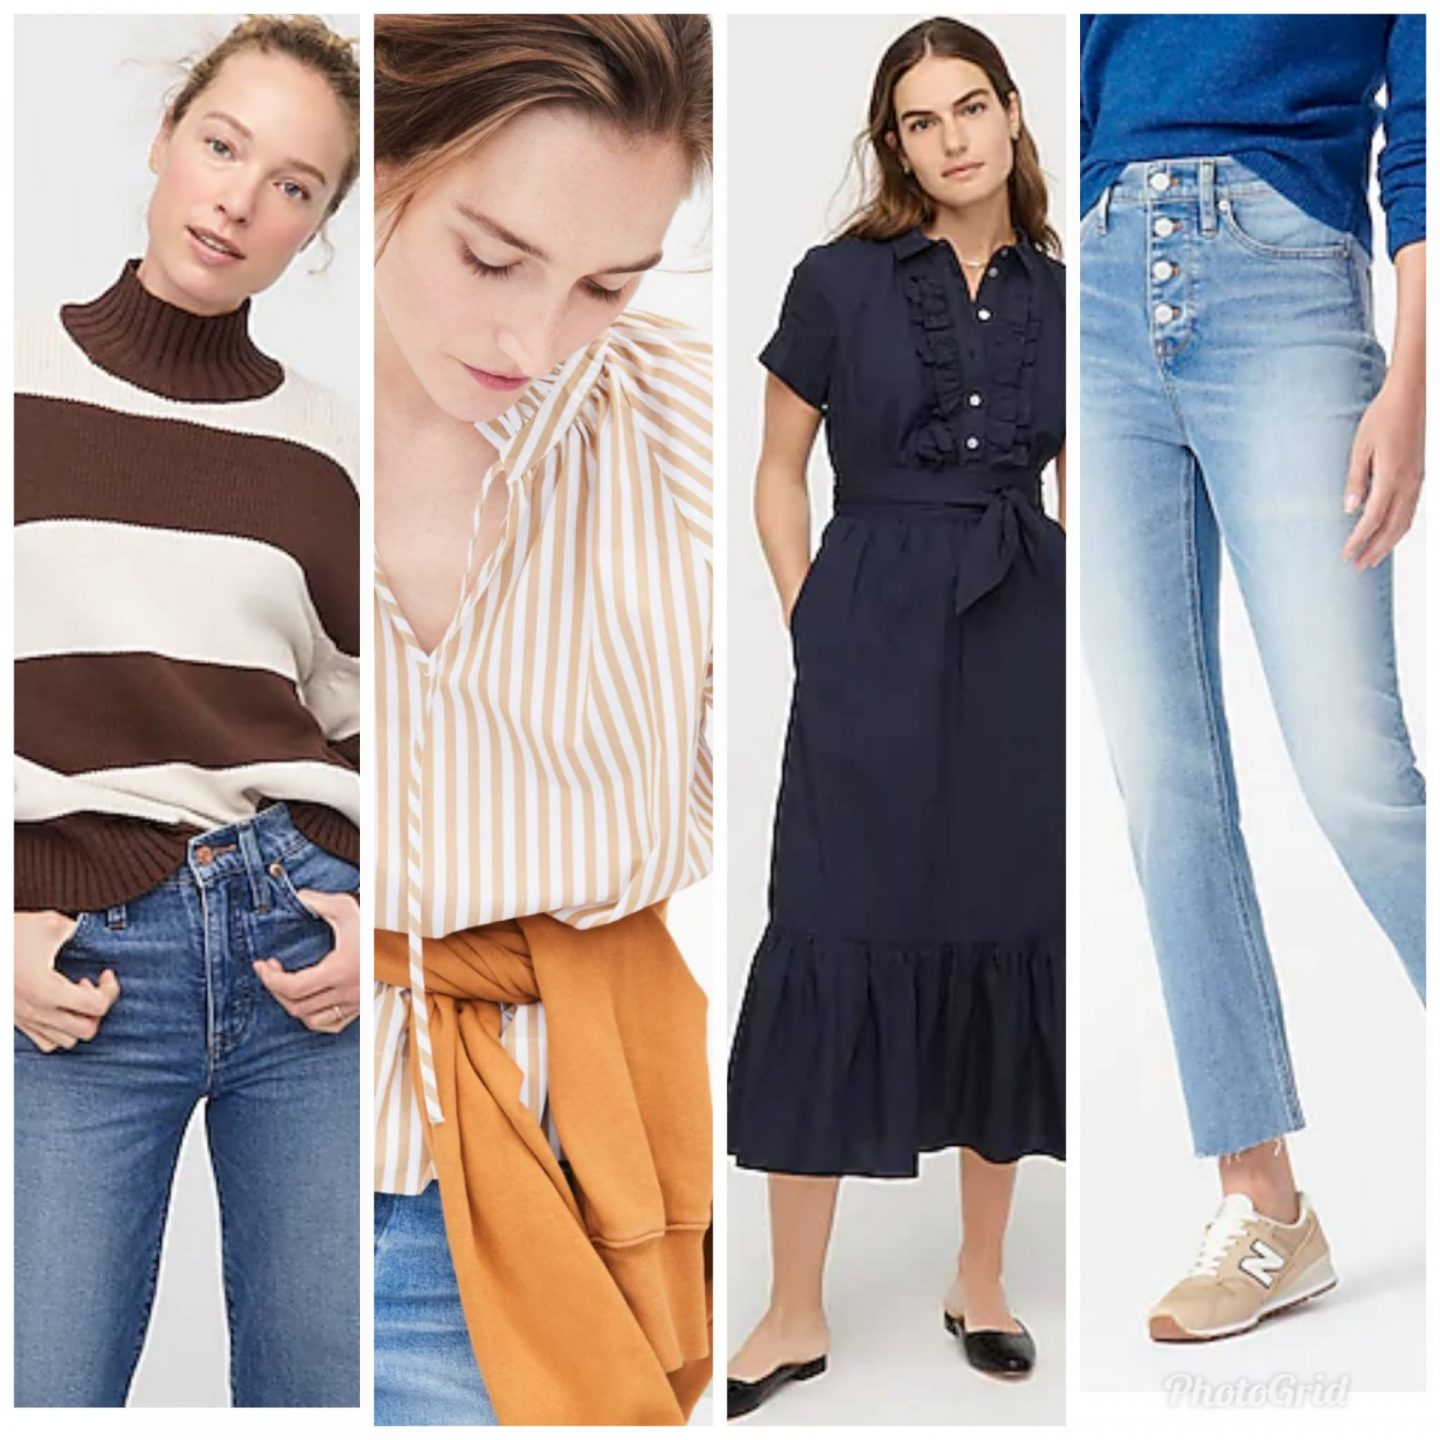 J Crew New Arrivals by popular Kentucky fashion blog, Really Rynetta: collage image of a J Crew brown and white stripe mock neck sweater, J Crew tan and white stripe peasant blouse, J Crew blue ruffle hem maxi dress, and J Crew button up denim.